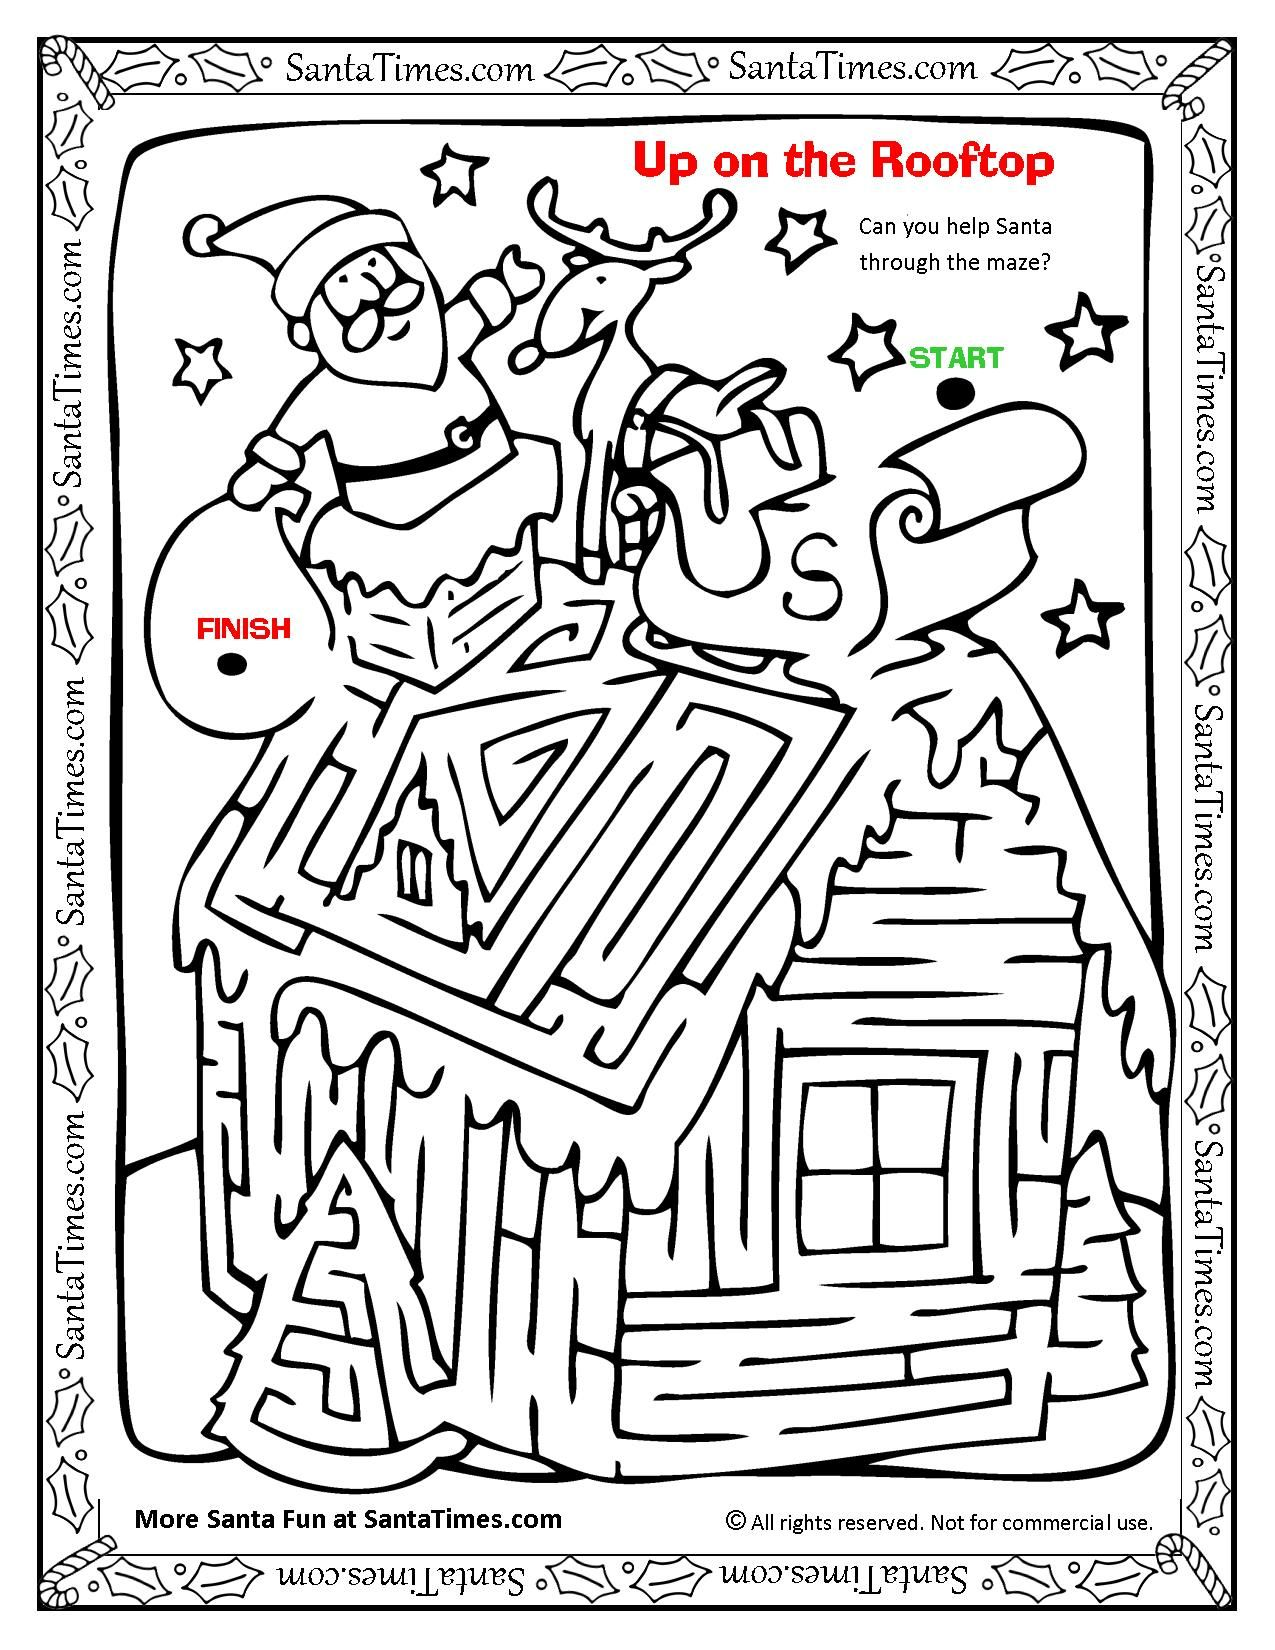 Up on the Rooftop with Santa Maze